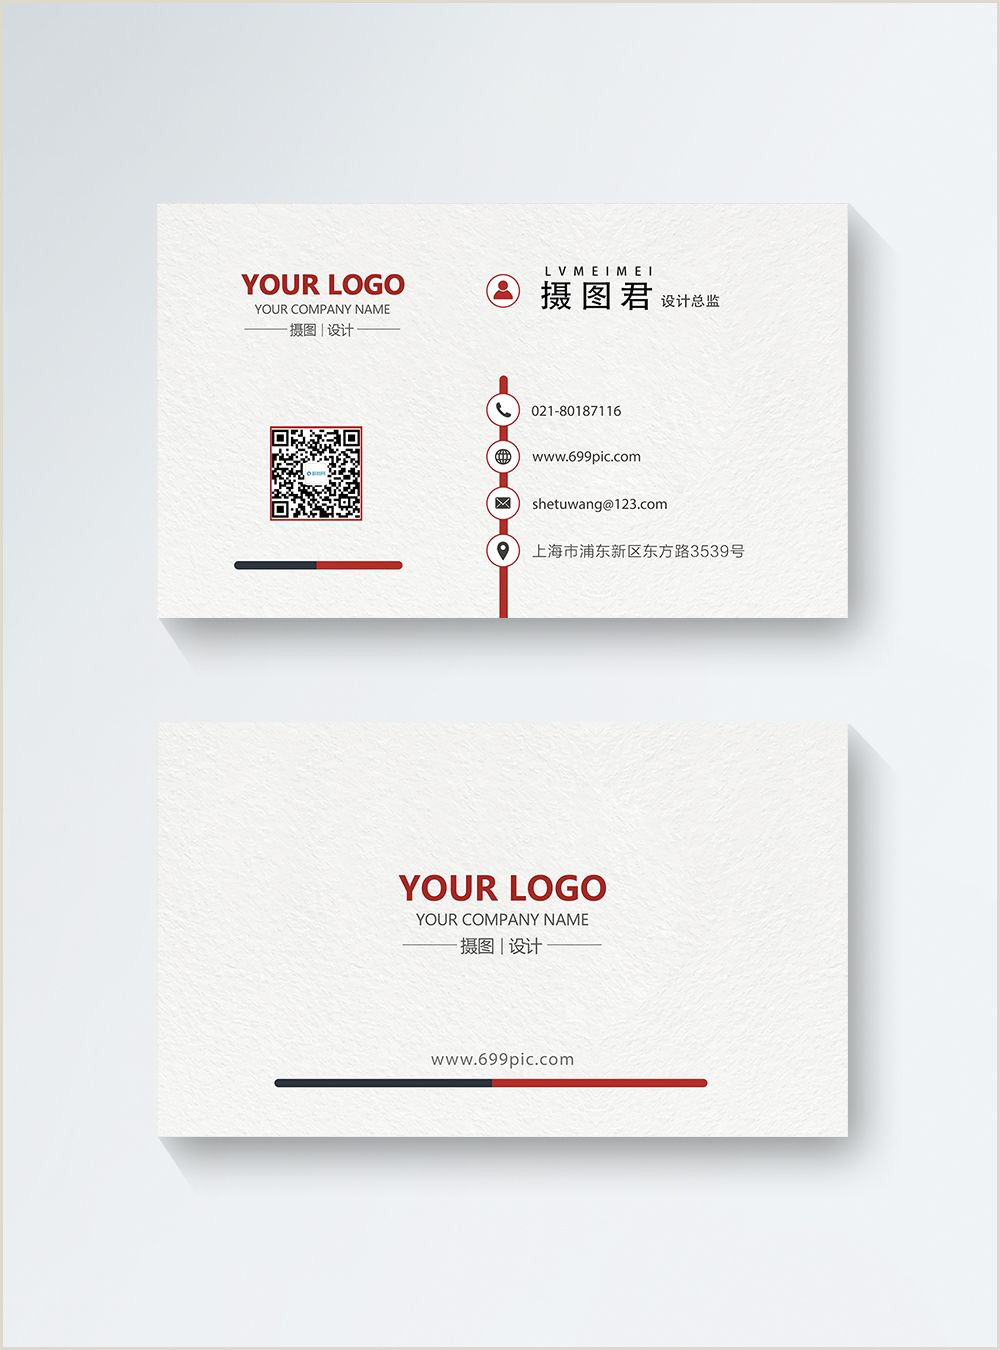 Business Card Without Company Name 비지니스 기업 명•¨ 명•¨ 개인 명•¨ 명•¨ 명•¨ 명•¨ 명•¨ 명•¨